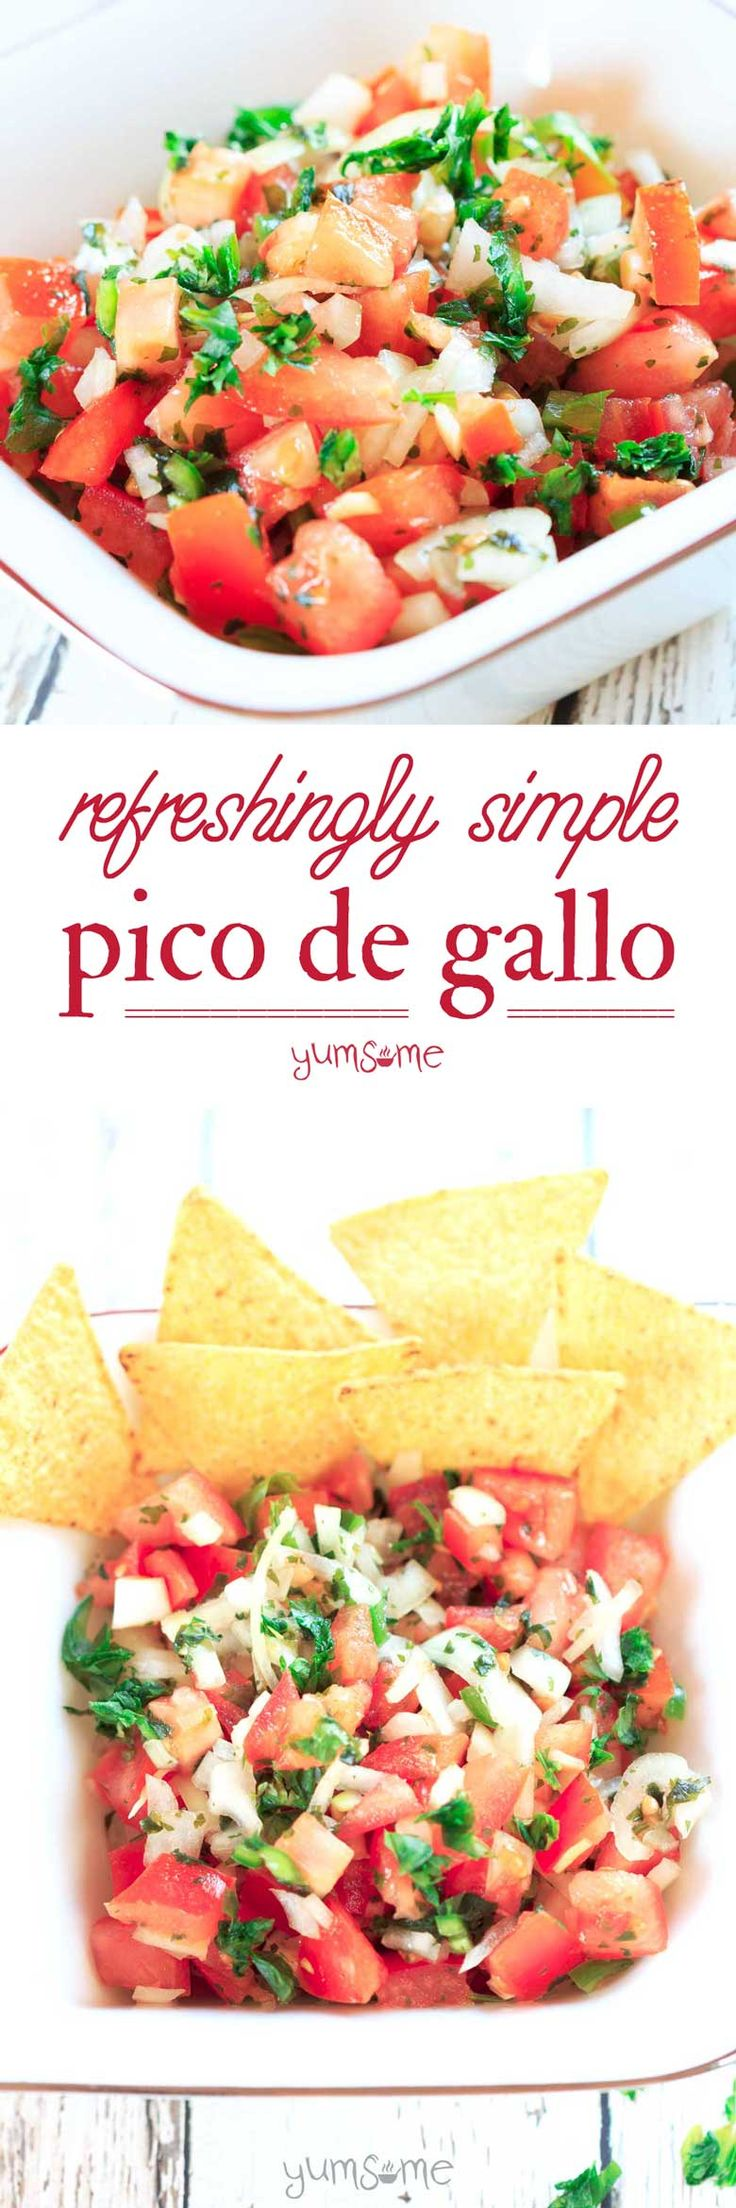 This refreshingly simple pico de gallo perfectly balances the sweetness of tomatoes and onions with the heat of chilli, and the sharpness of lime. | yumsome.com via @yums0me